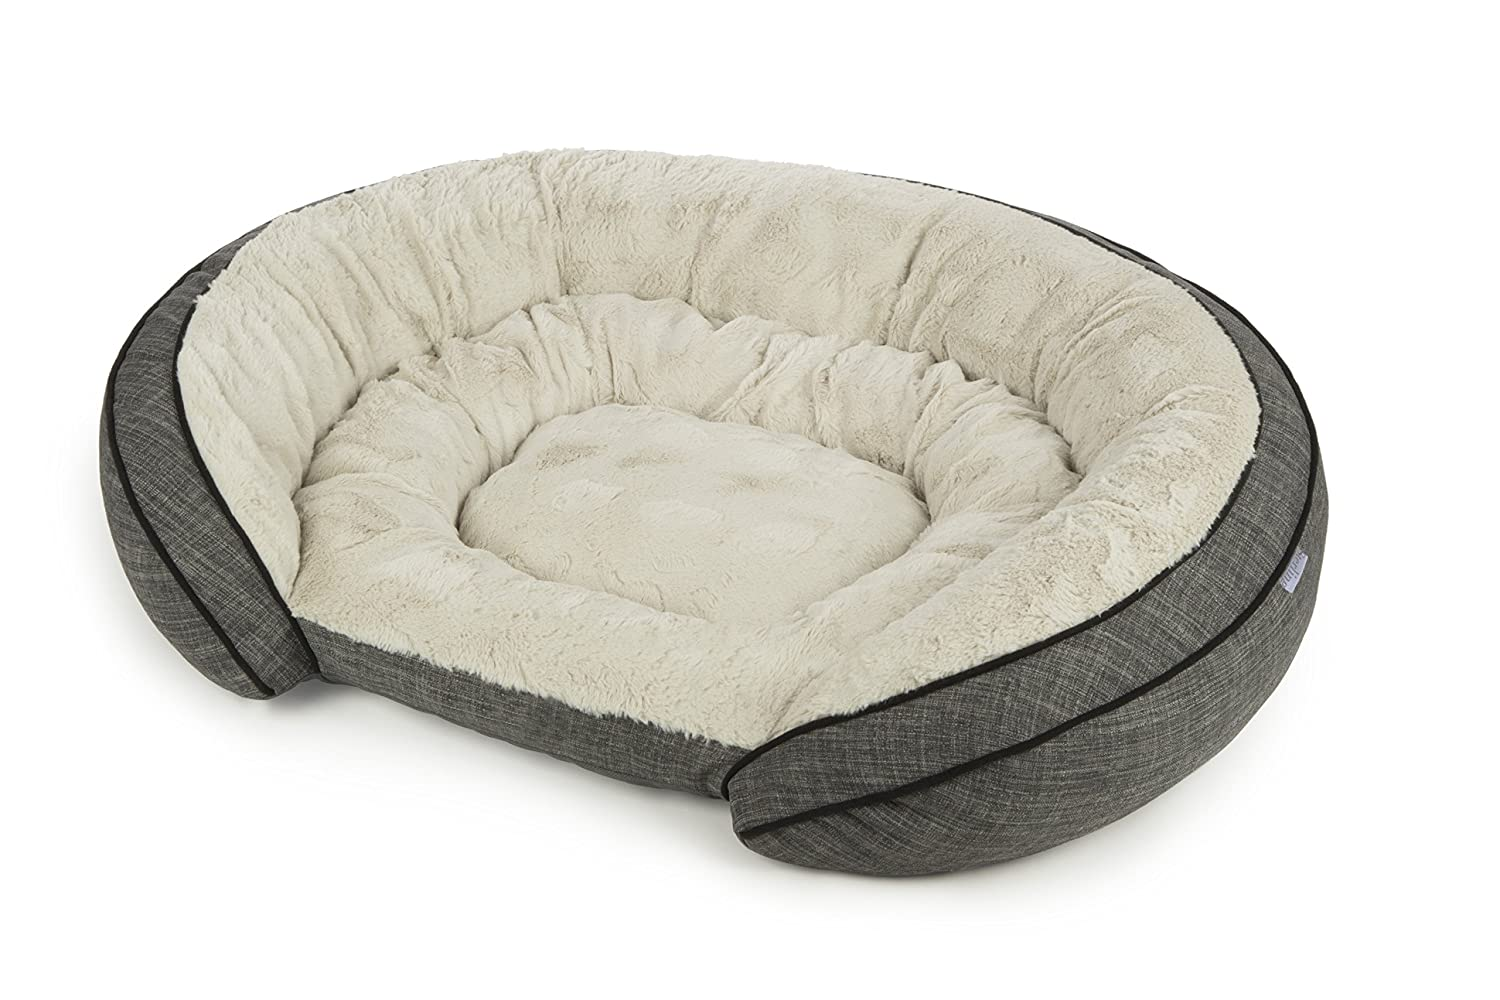 Sterling Premium Comfort Pet Beds for Dogs and Cats